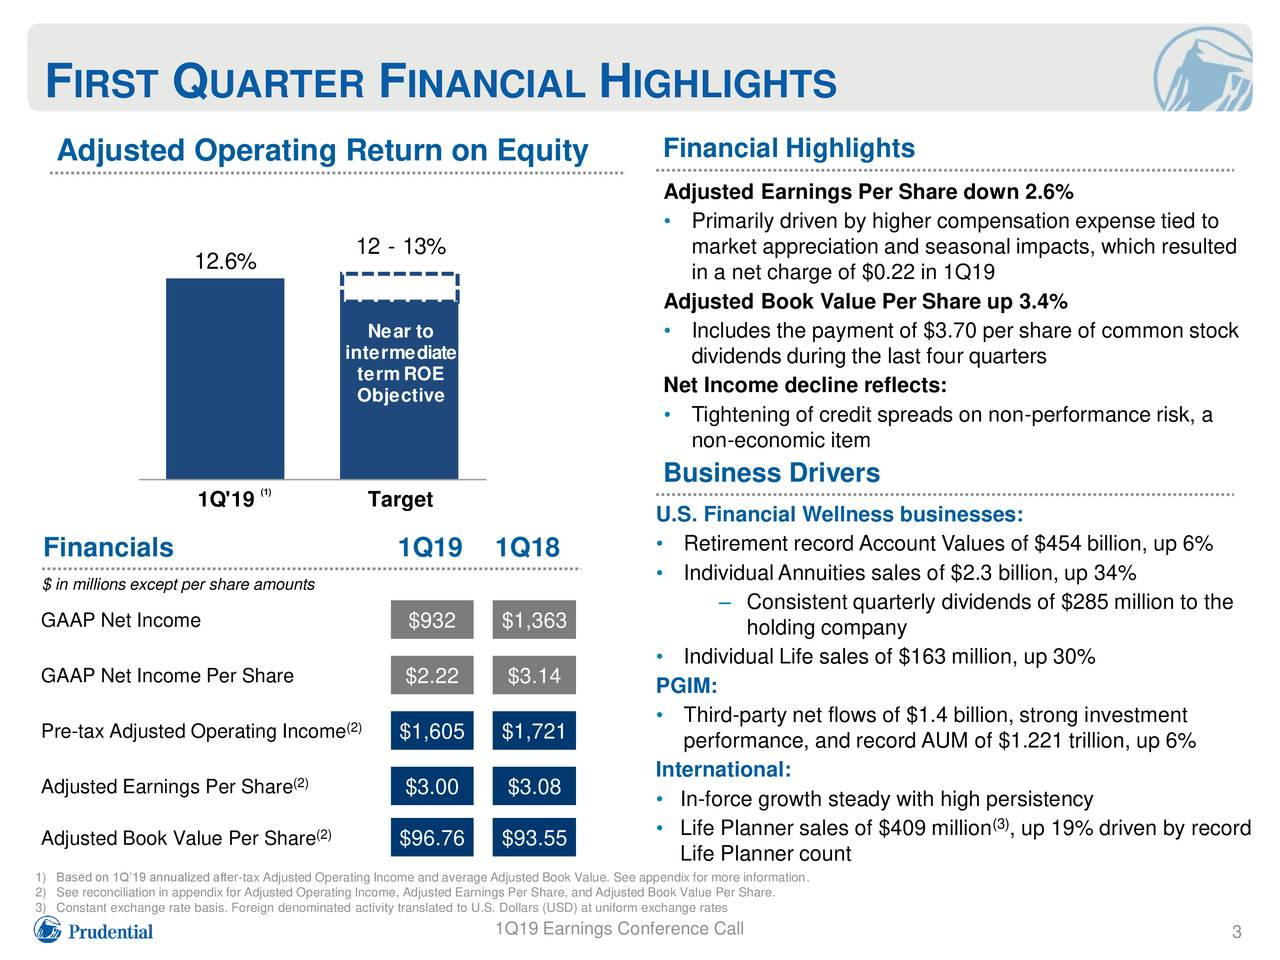 Adjusted Operating Return on Equity Financial Highlights Adjusted Earnings Per Share down 2.6% • Primarily driven by higher compensation expense tied to 12 - 13% market appreciation and seasonal impacts, which resulted 12.6% in a net charge of $0.22 in 1Q19 Adjusted Book Value Per Share up 3.4% Near to • Includes the payment of $3.70 per share of common stock intermediate dividends during the last four quarters termROE Net Income decline reflects: Objective • Tightening of credit spreads on non-performance risk, a non-economic item Business Drivers 1Q'19 (1) Target U.S. Financial Wellness businesses: Financials 1Q19 1Q18 • Retirement record Account Values of $454 billion, up 6% • IndividualAnnuities sales of $2.3 billion, up 34% $ in millions except per share amounts GAAP Net Income $932 $1,363 – Consistent quarterly dividends of $285 million to the holding company • Individual Life sales of $163 million, up 30% GAAP Net Income Per Share $2.22 $3.14 PGIM: Pre-tax Adjusted Operating Inco$1,605 $1,721 • Third-party net flows of $1.4 billion, strong investment performance, and record AUM of $1.221 trillion, up 6% (2) International: Adjusted Earnings Per Share $3.00 $3.08 • In-force growth steady with high persistency (3) Adjusted Book Value Per Share $96.76 $93.55 • Life Planner sales of $409 million , up 19% driven by record Life Planner count 2) See reconciliation in appendix for Adjusted Operating Income, Adjusted Earnings Per Share, and Adjusted Book Value Per Share.ion. 3) Constant exchange rate basis. Foreign denominated activity translated to U.S. Dollars (USD) at uniform exchange rates 1Q19 Earnings Conference Call 3